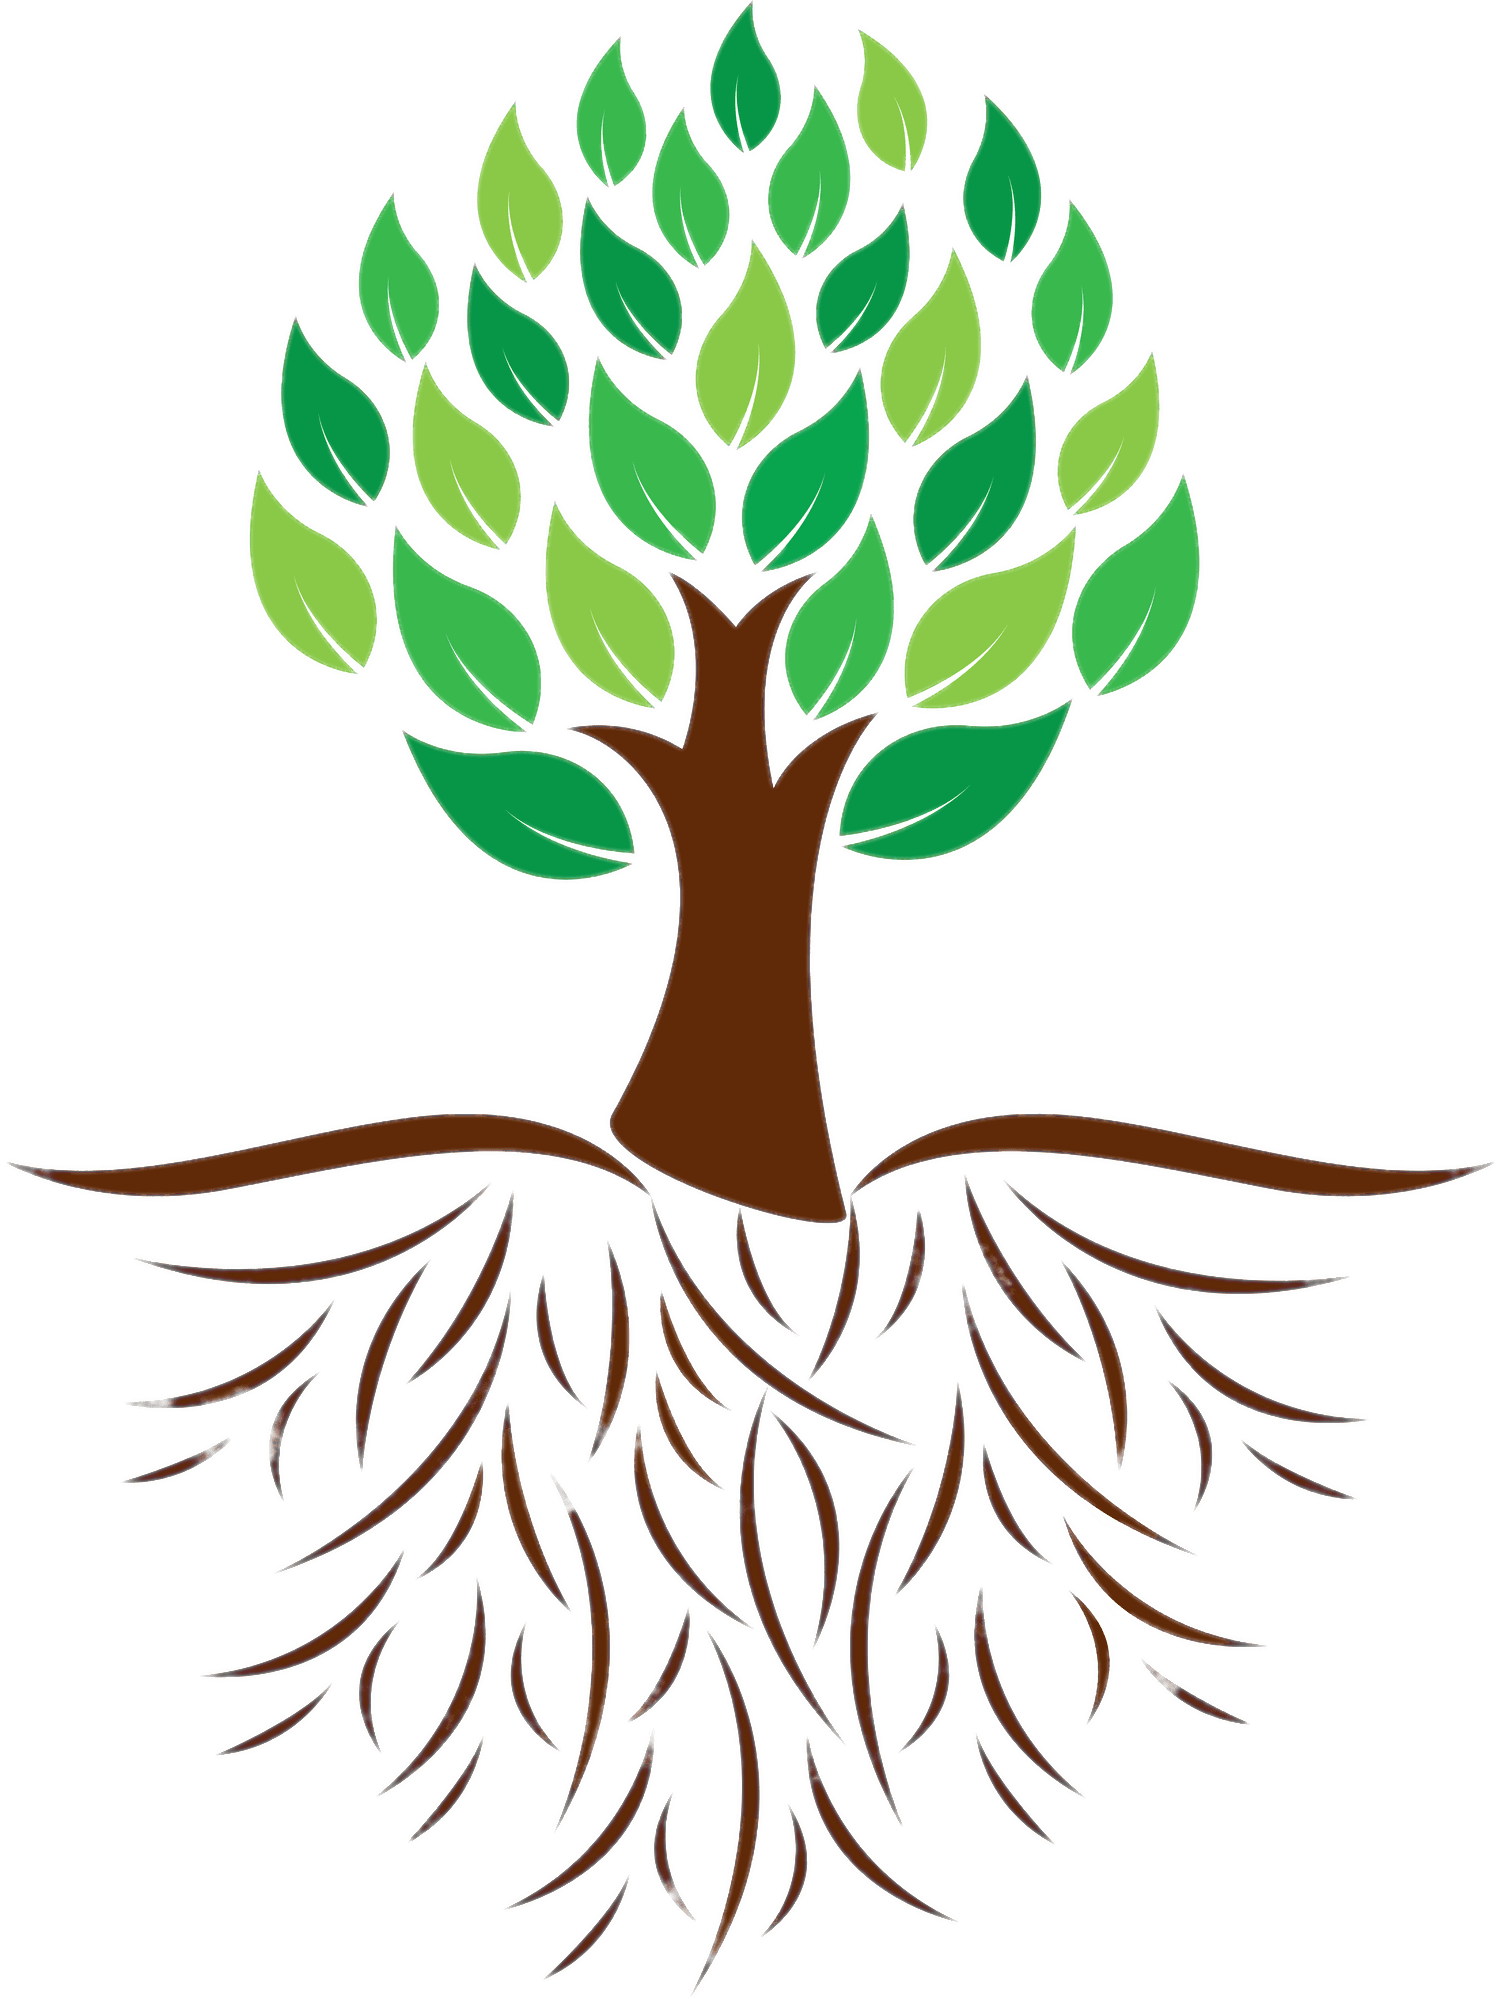 Green roots png. Tree and colour illustration